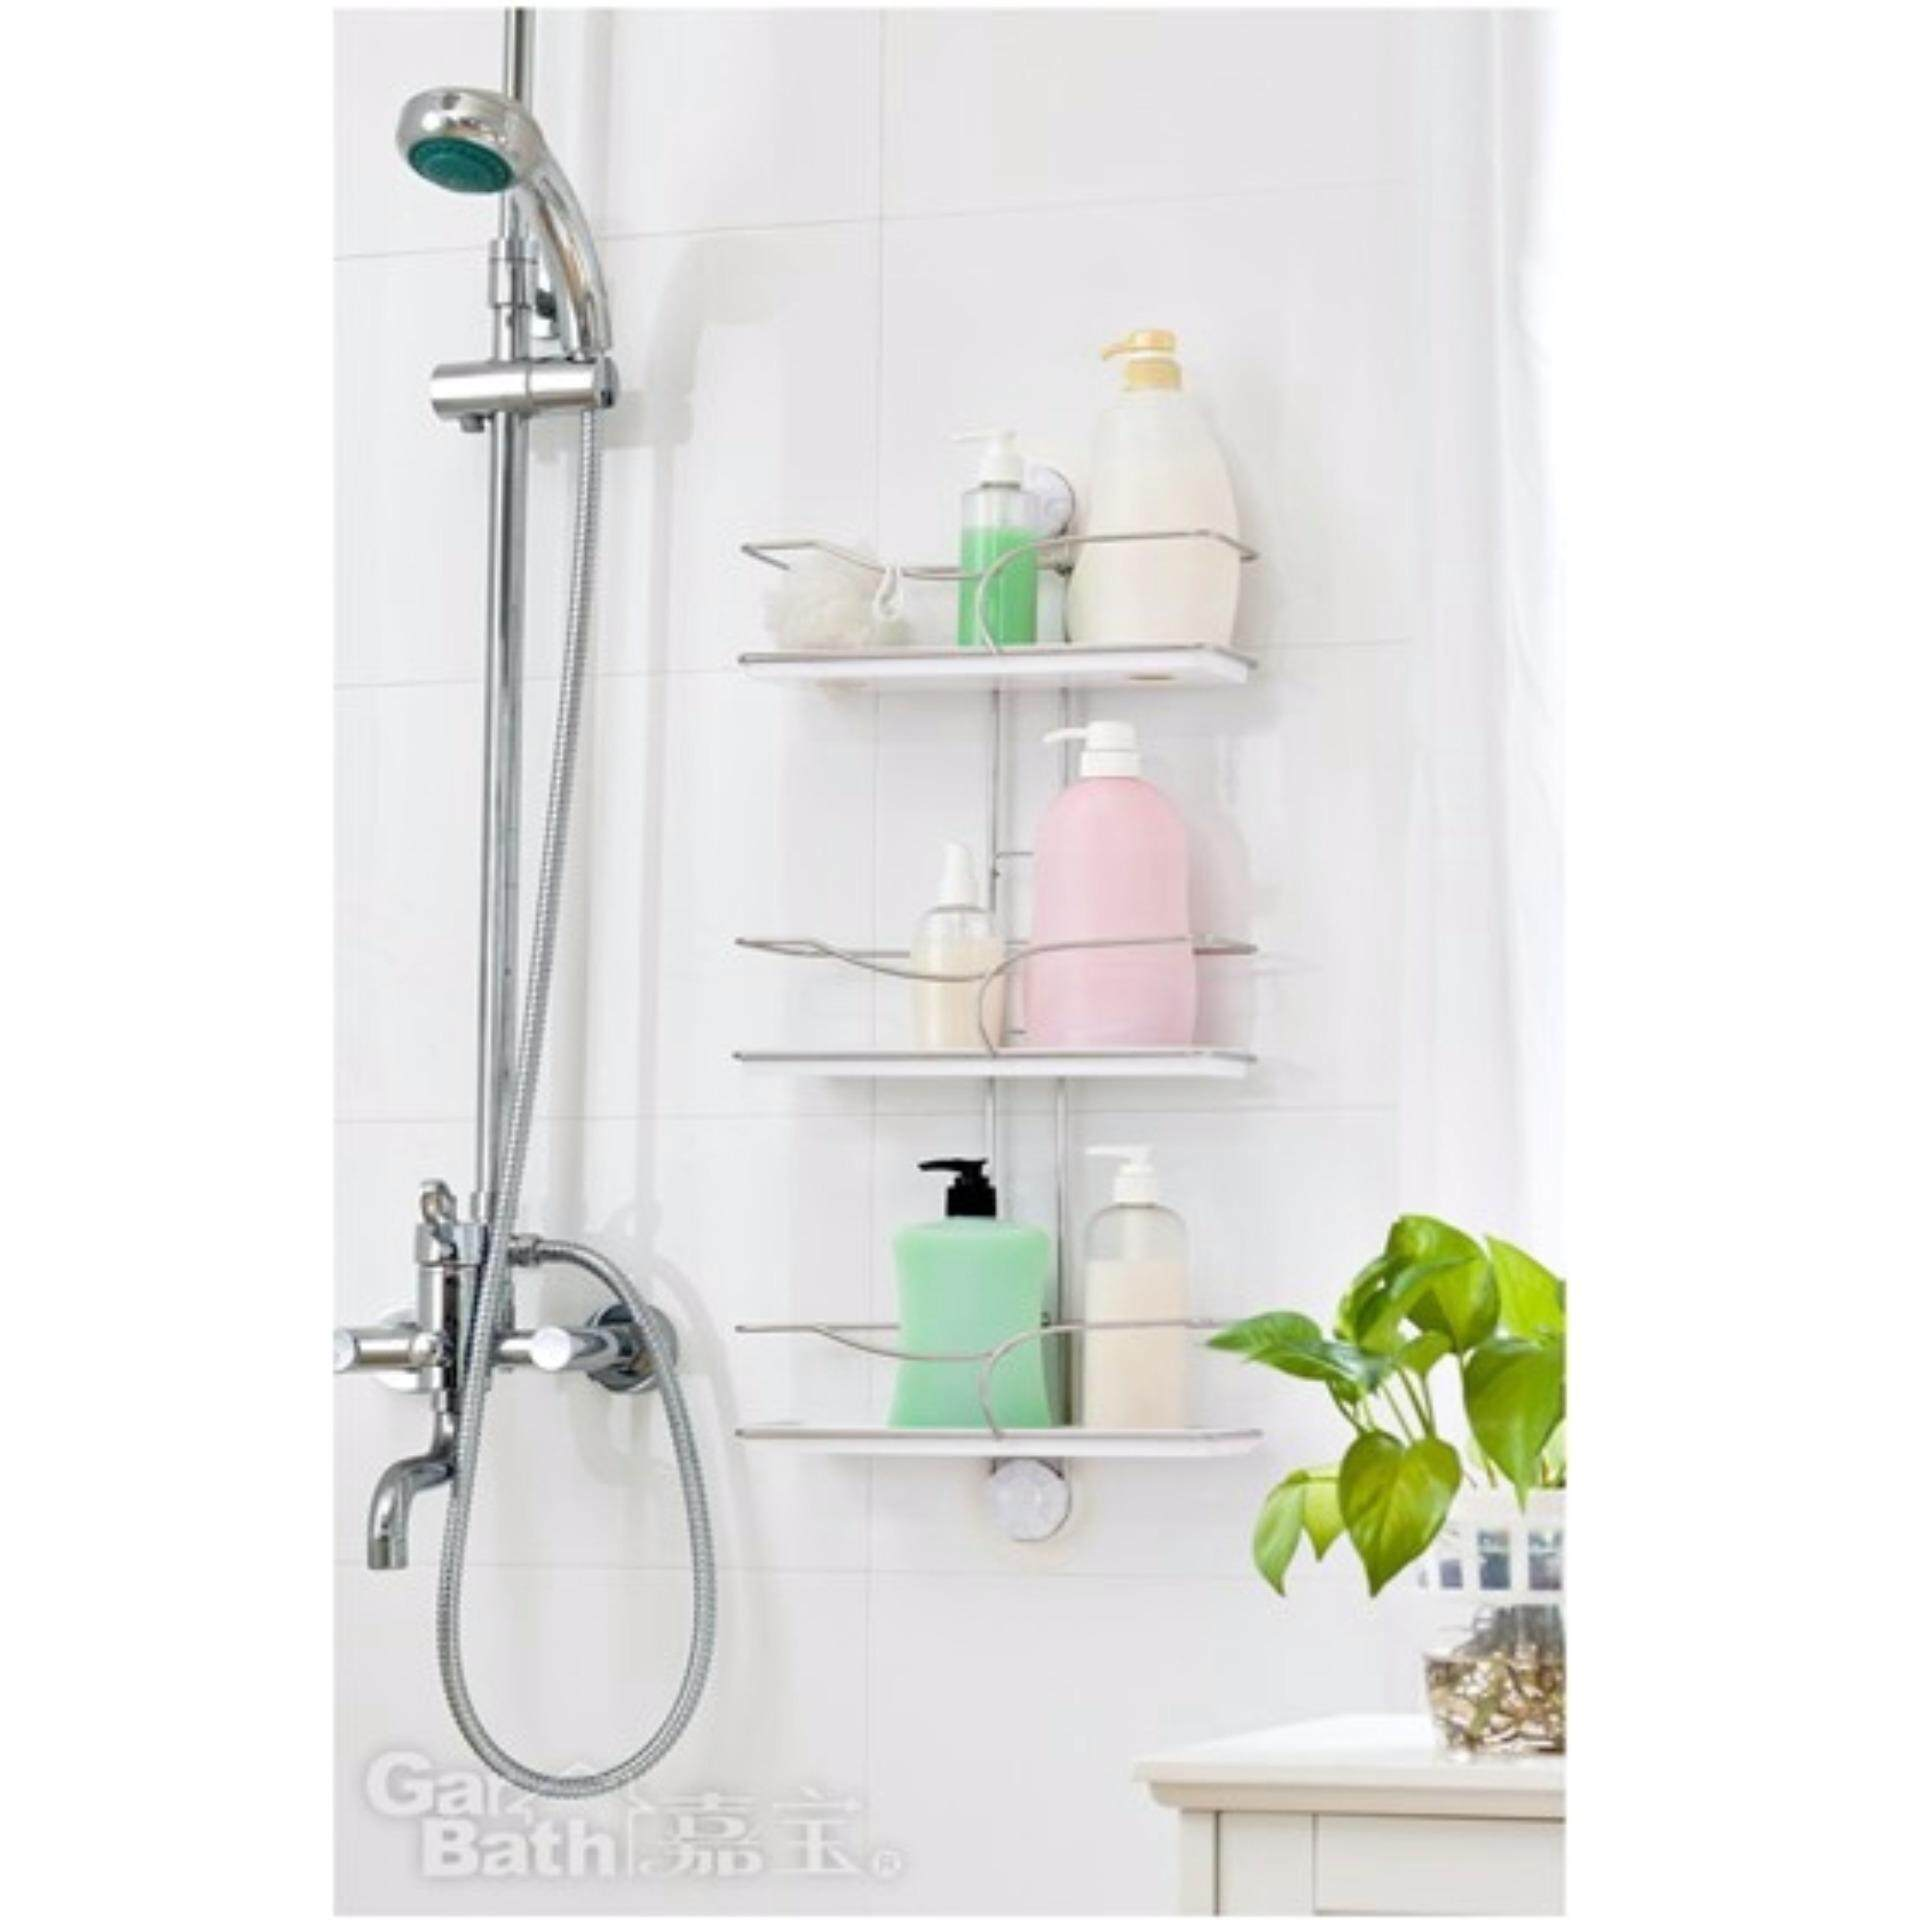 Garbath Bathroom Ladder Shelf